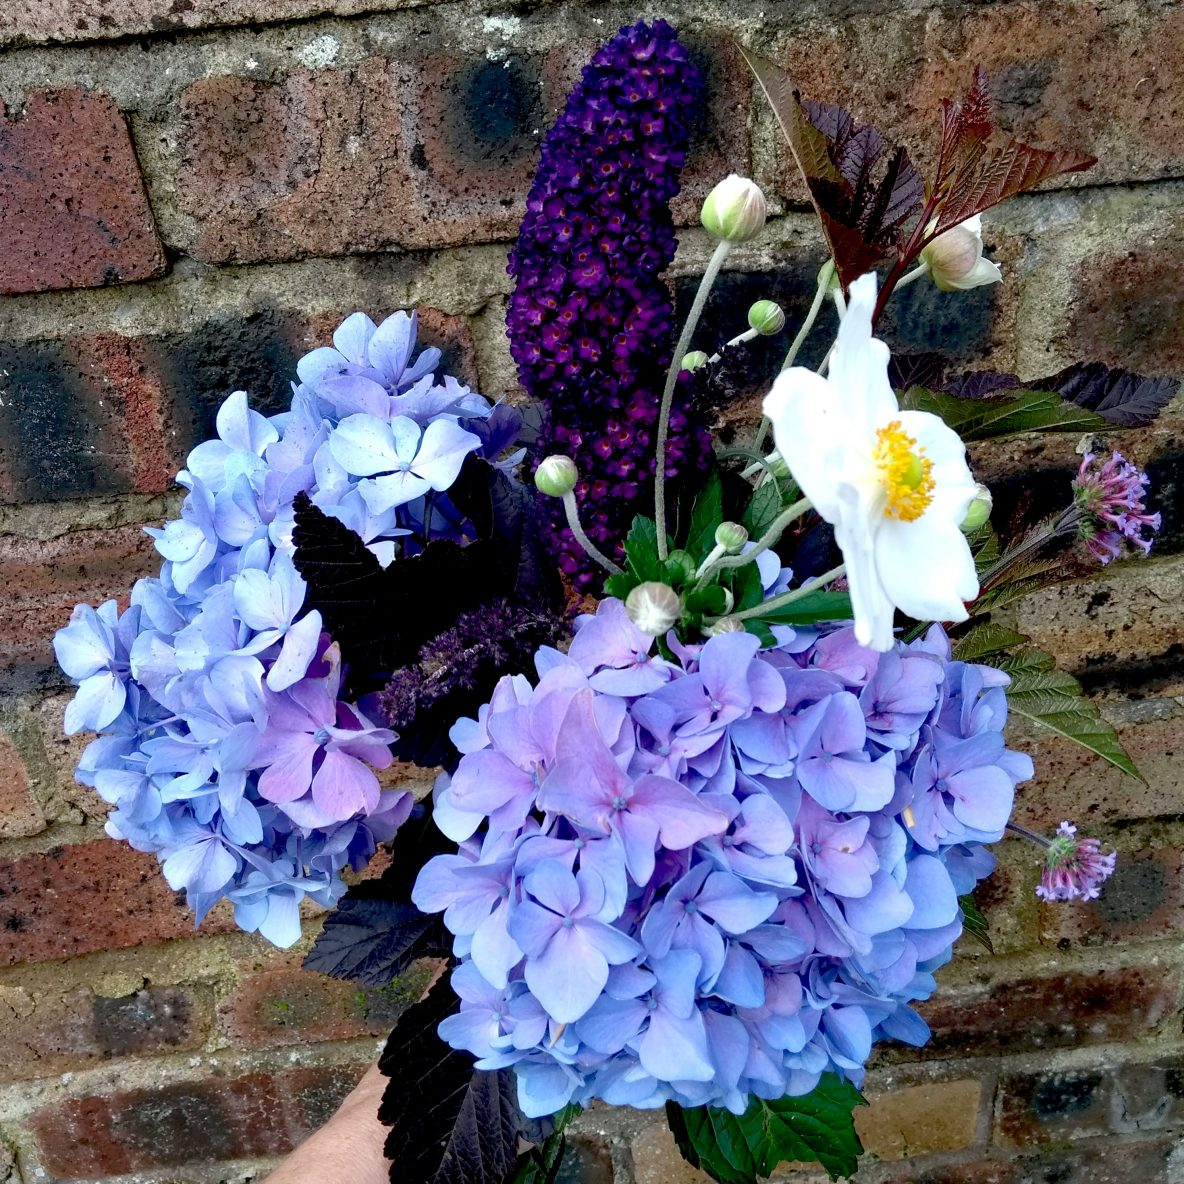 Blue hydrangea, purple buddleia and white anemone posy against a brick wall